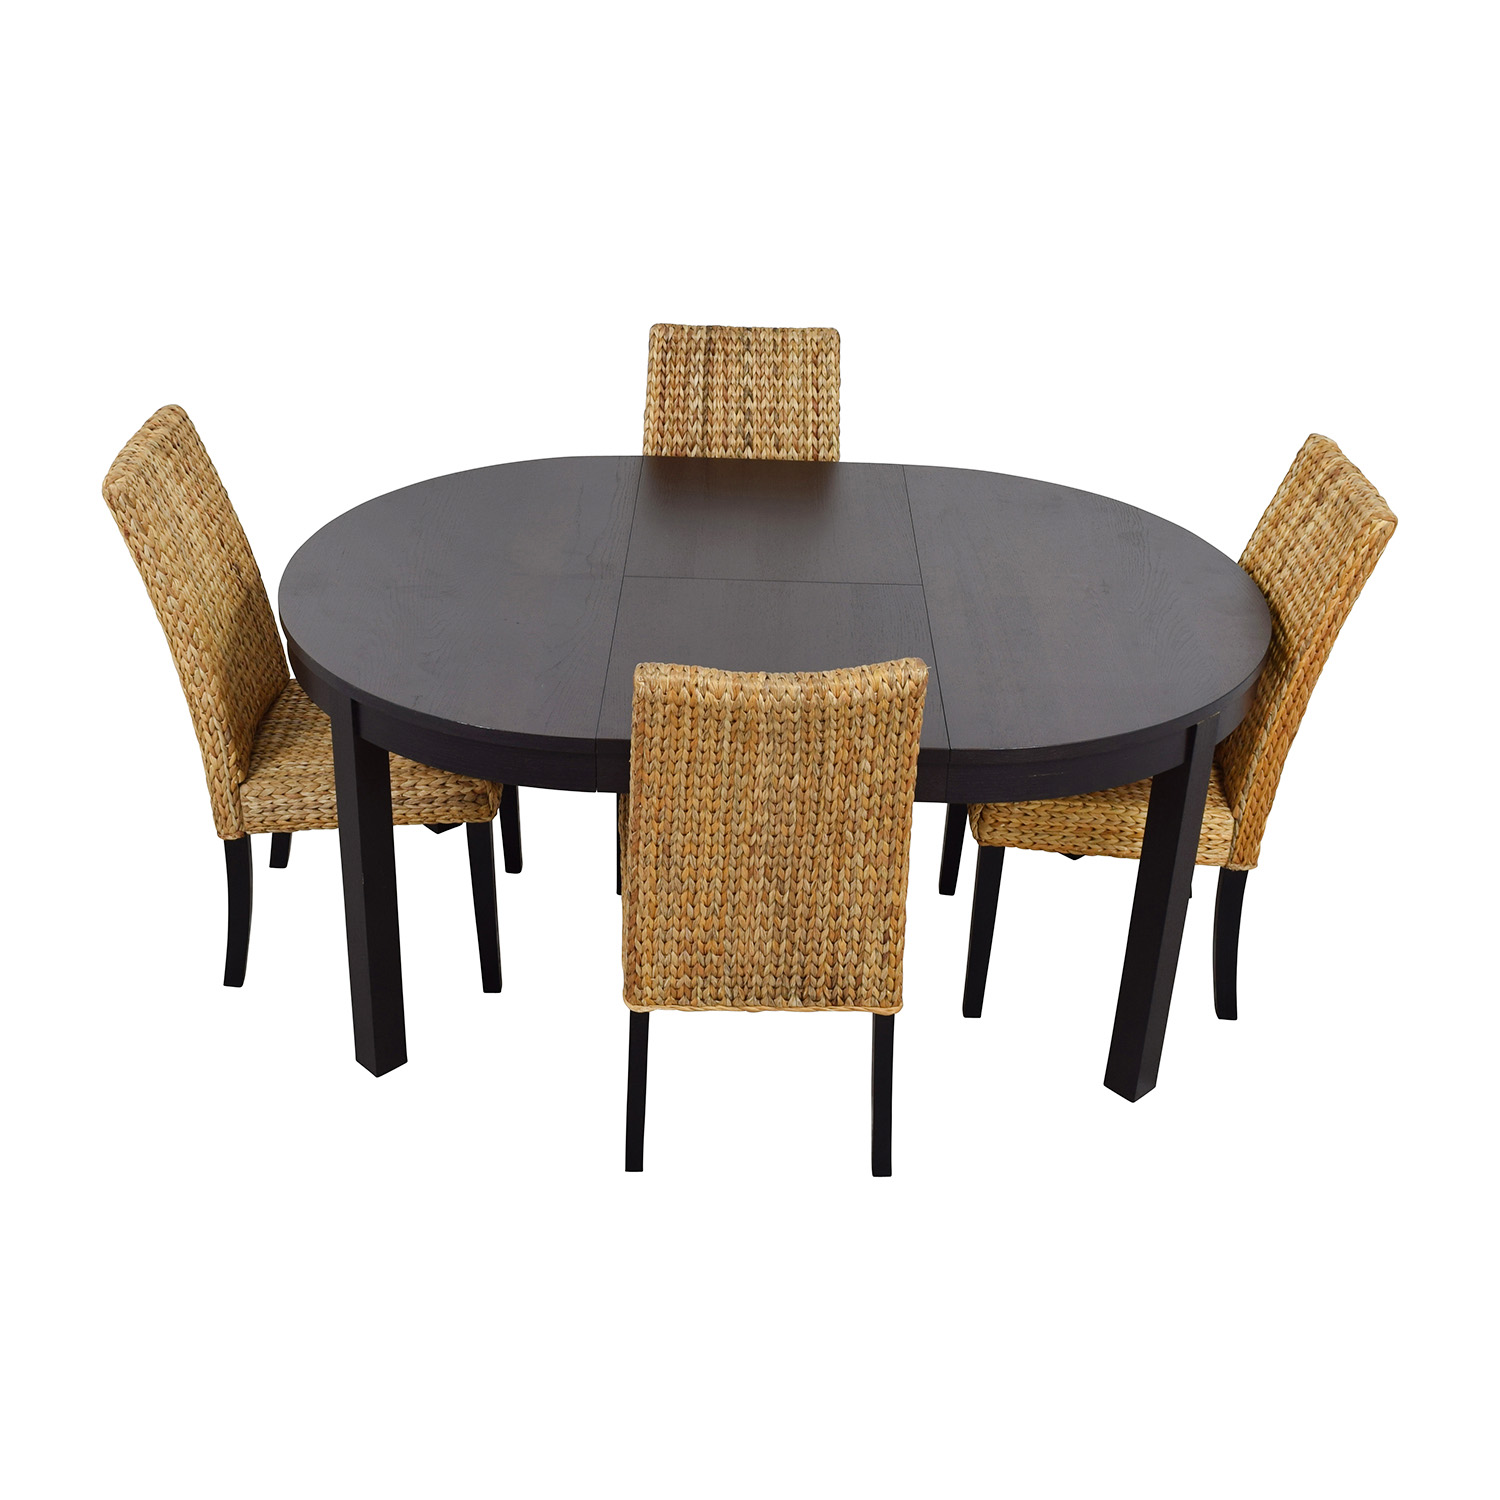 Ikea Round Table And Chairs: Round Black Dining Table Set With Four Chairs